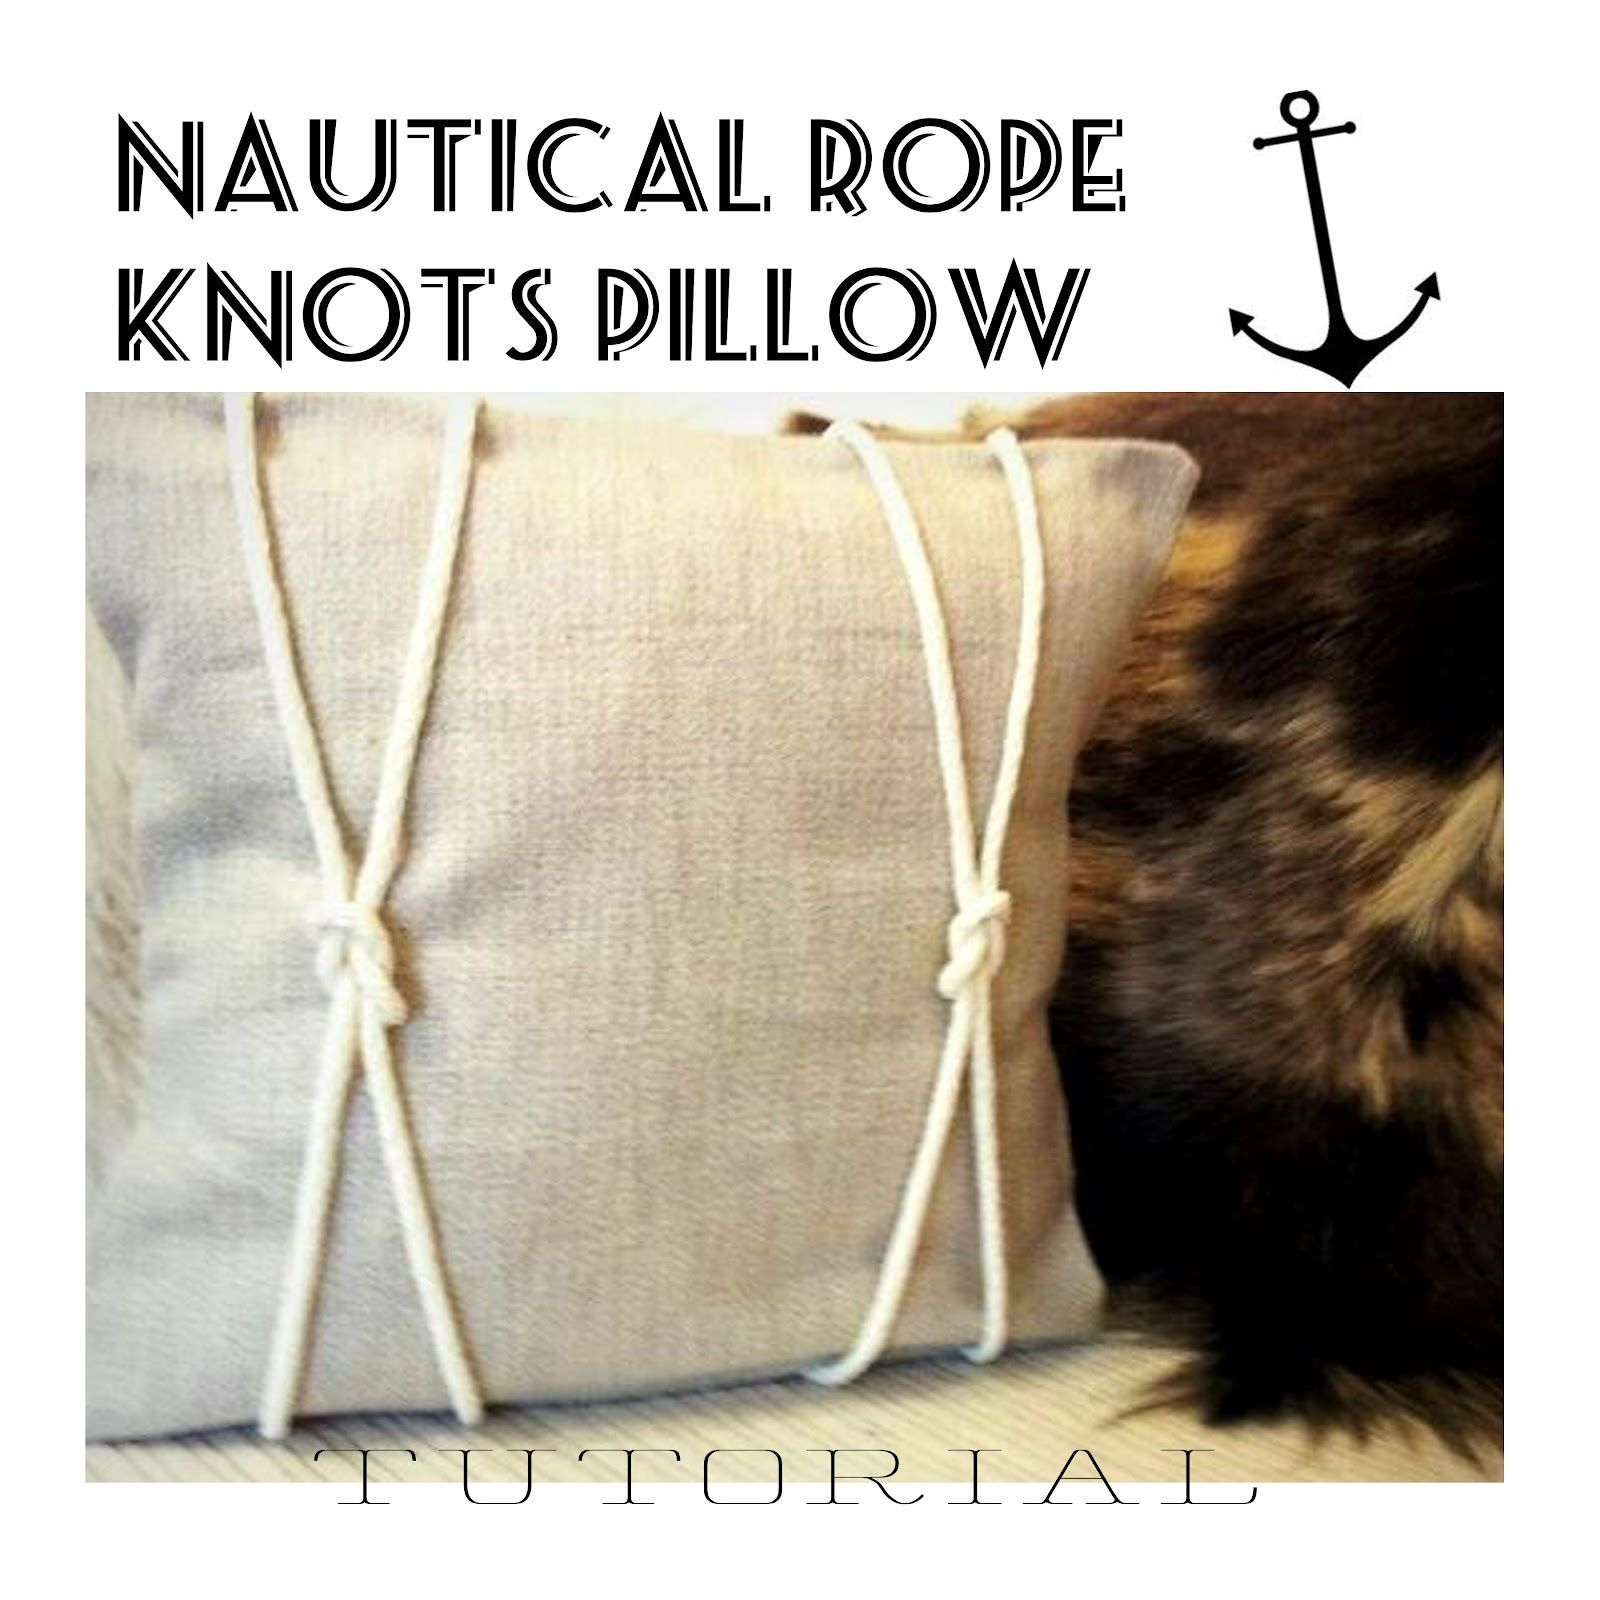 Inspiration embellish a plain crocheted pillow cover with nautical